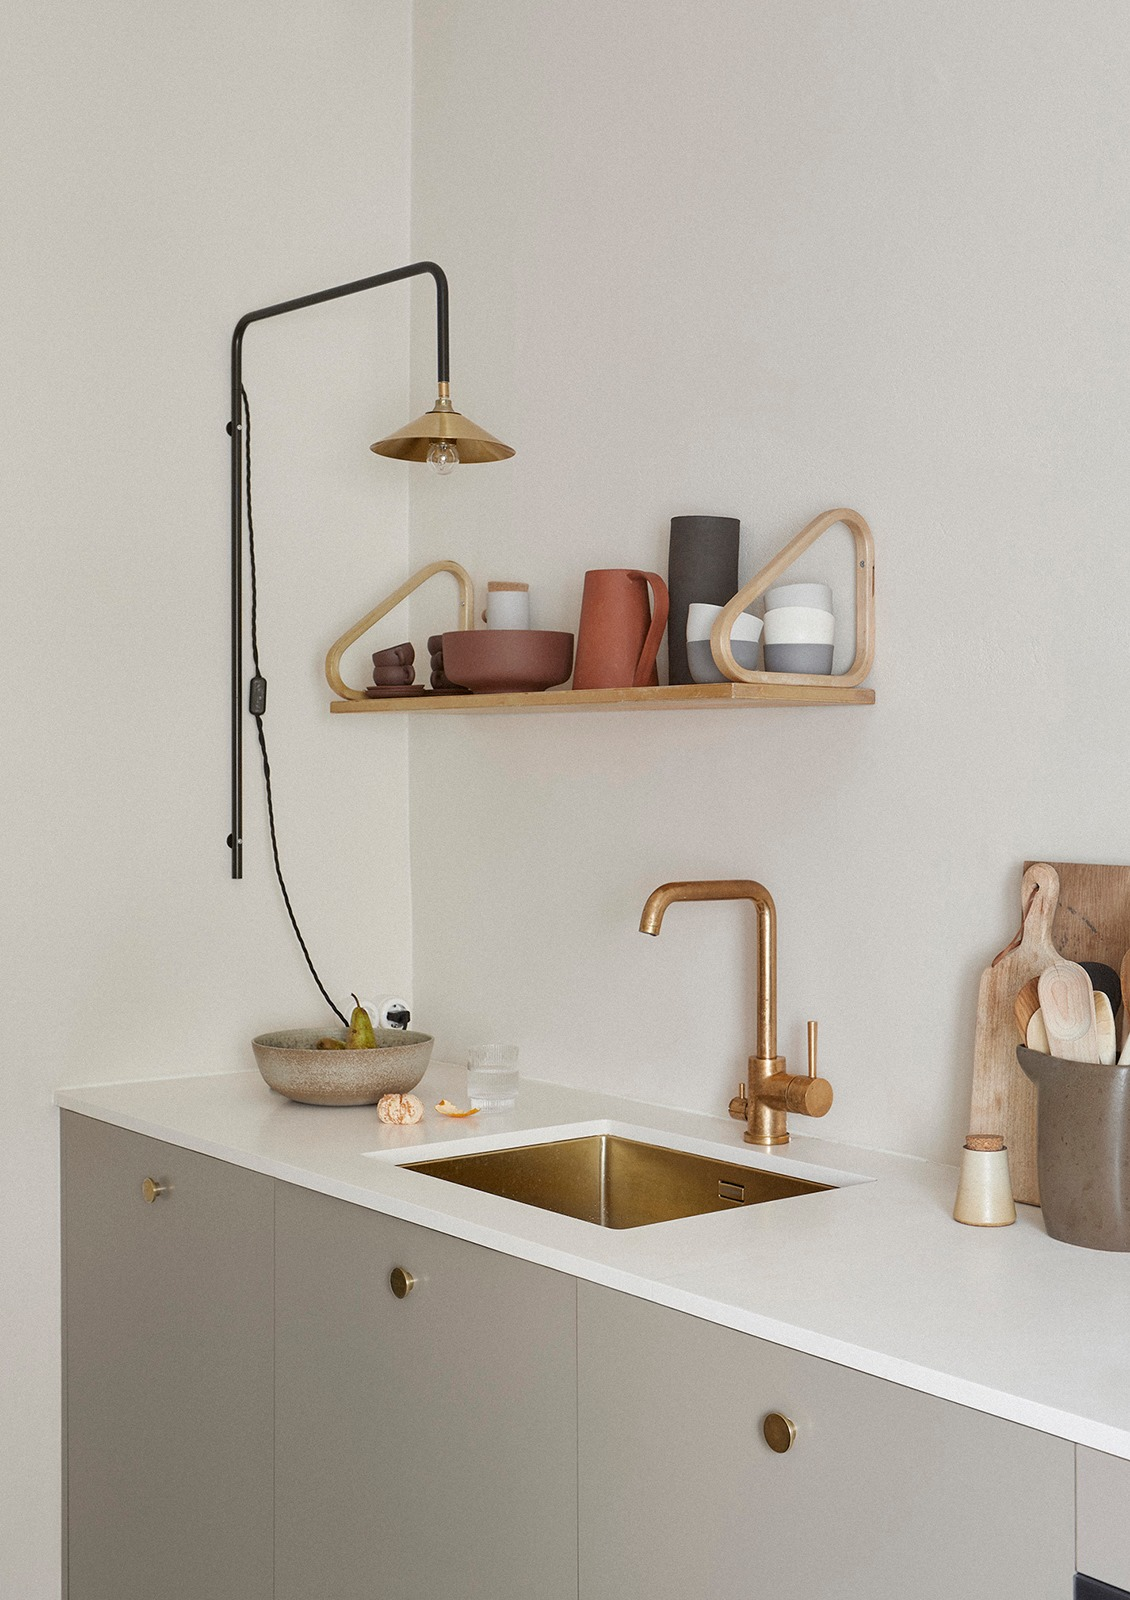 ilaria fatone _ shelf in minimal kitchen _ a wooden design shelf